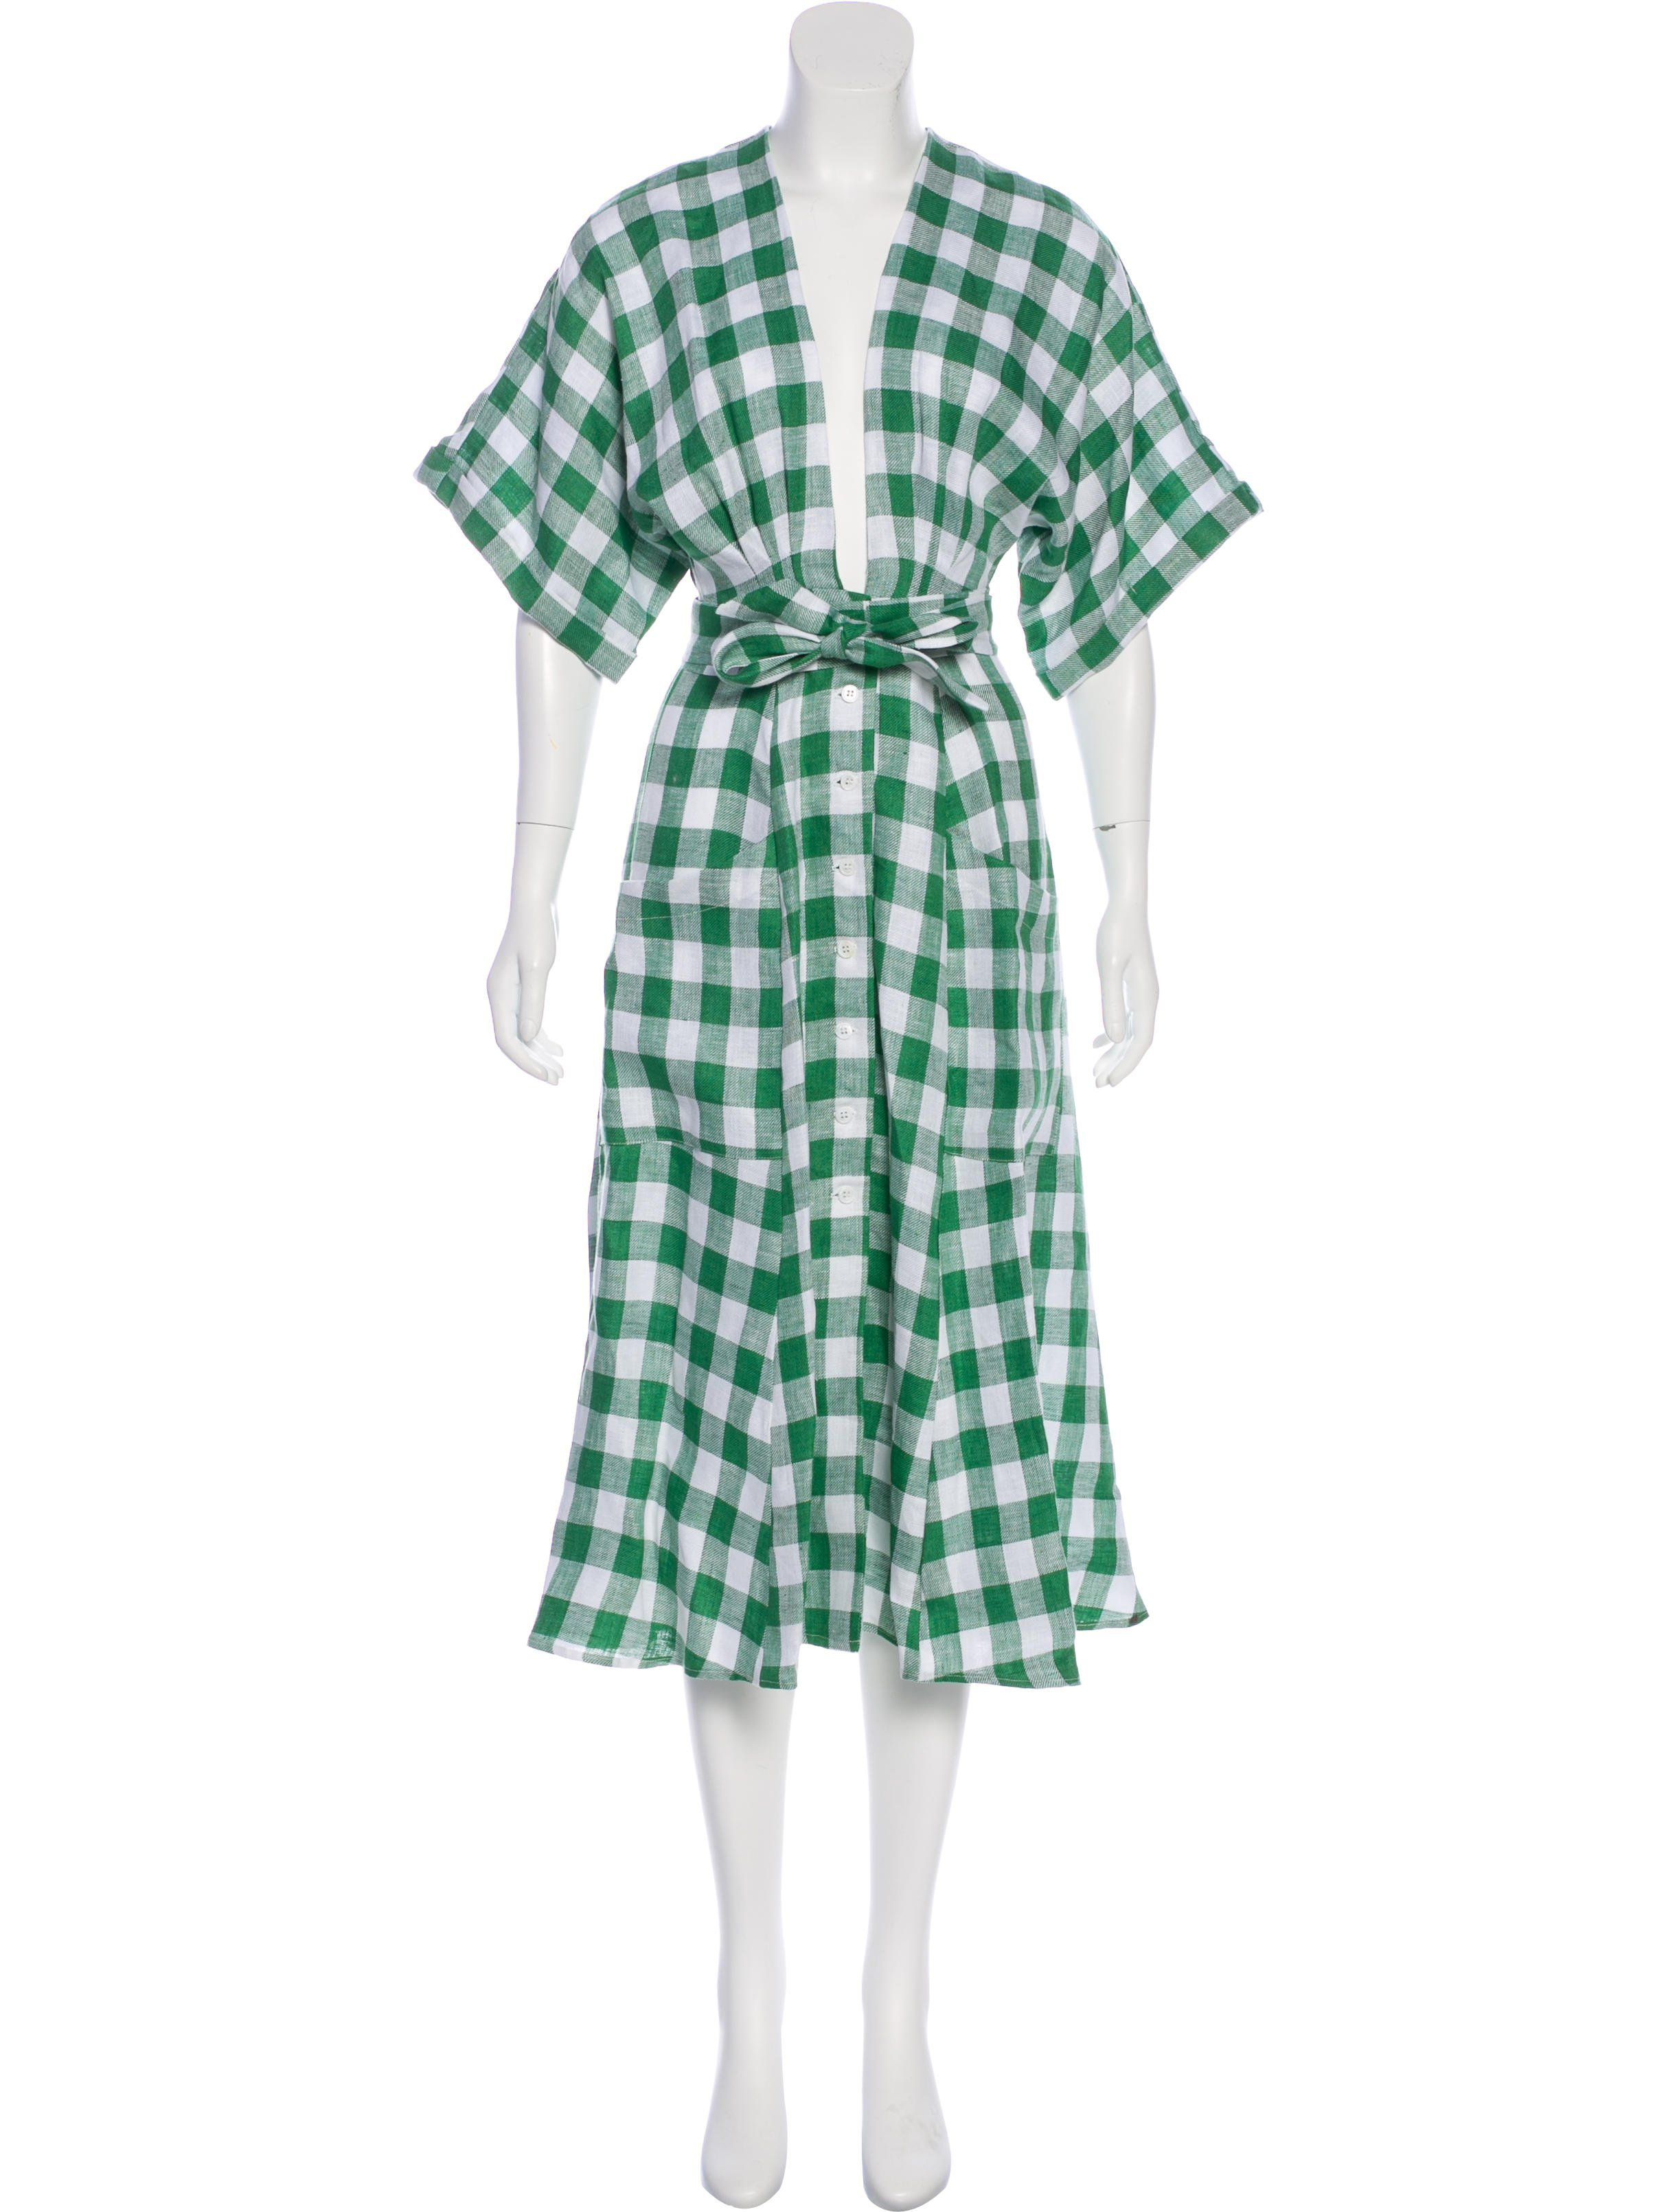 494e05143d001 Green and white Reformation short sleeve midi dress with gingham print  throughout and button closures at